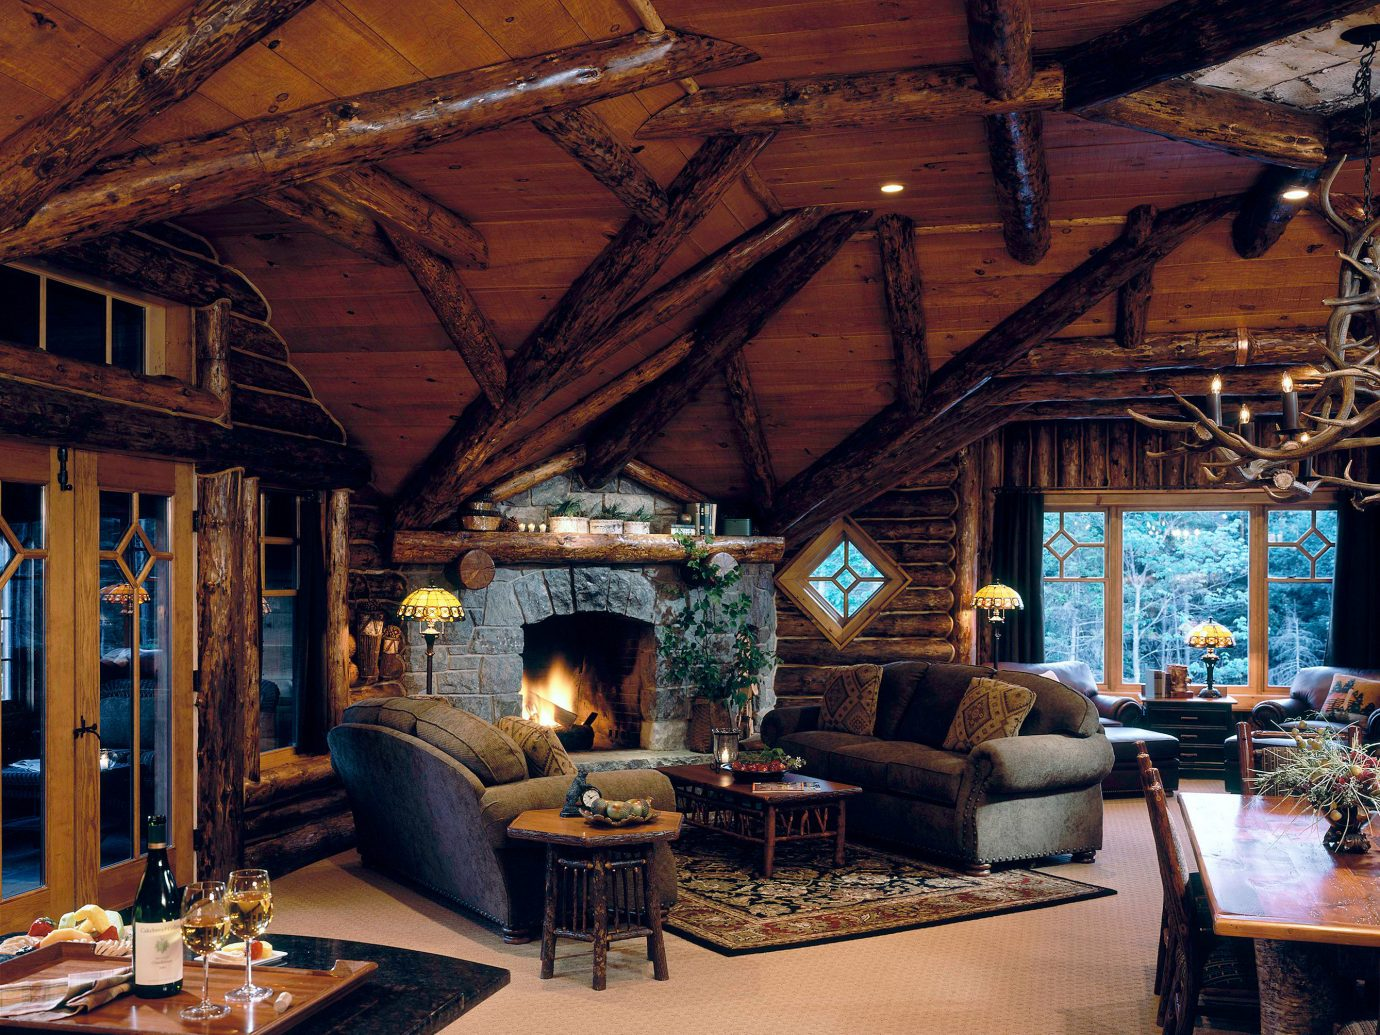 Hotels Living Lodge Lounge Luxury New York Romantic Romantic Hotels Rustic indoor ceiling room property building house estate living room home log cabin interior design wood cottage outdoor structure furniture area